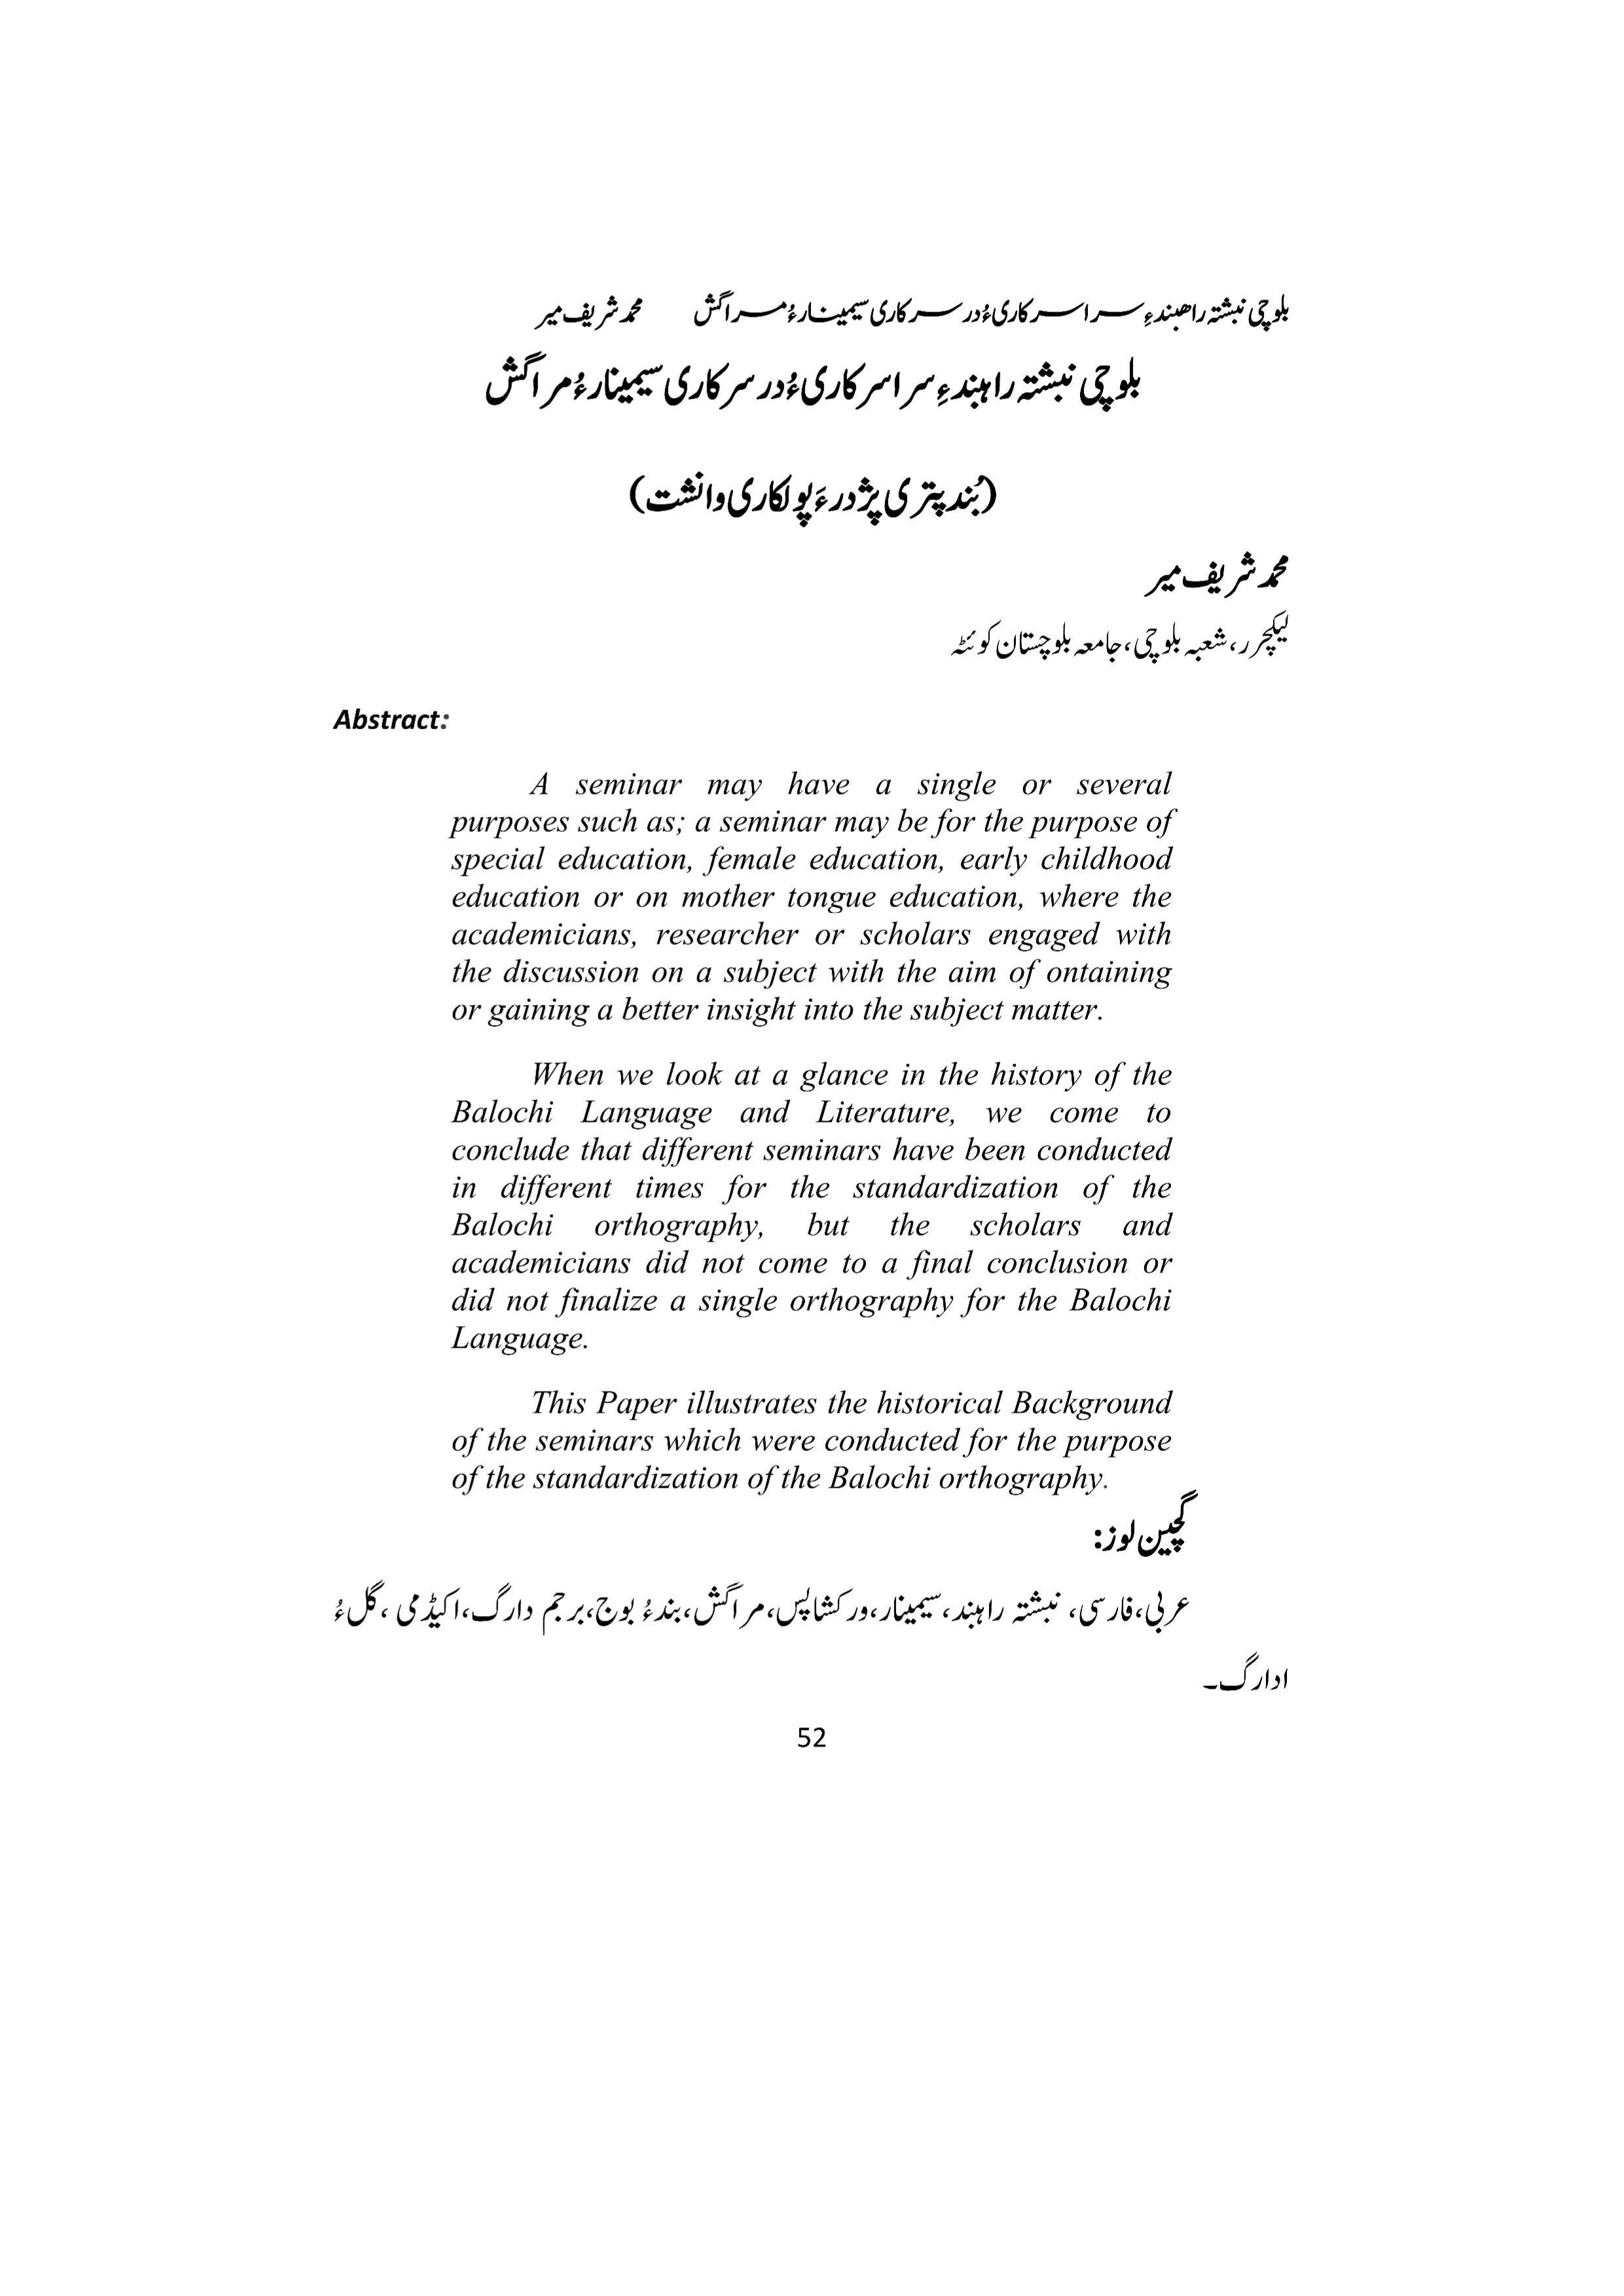 Official and Non-Official Seminars on Balochi Script (Background and Analytical Studies)